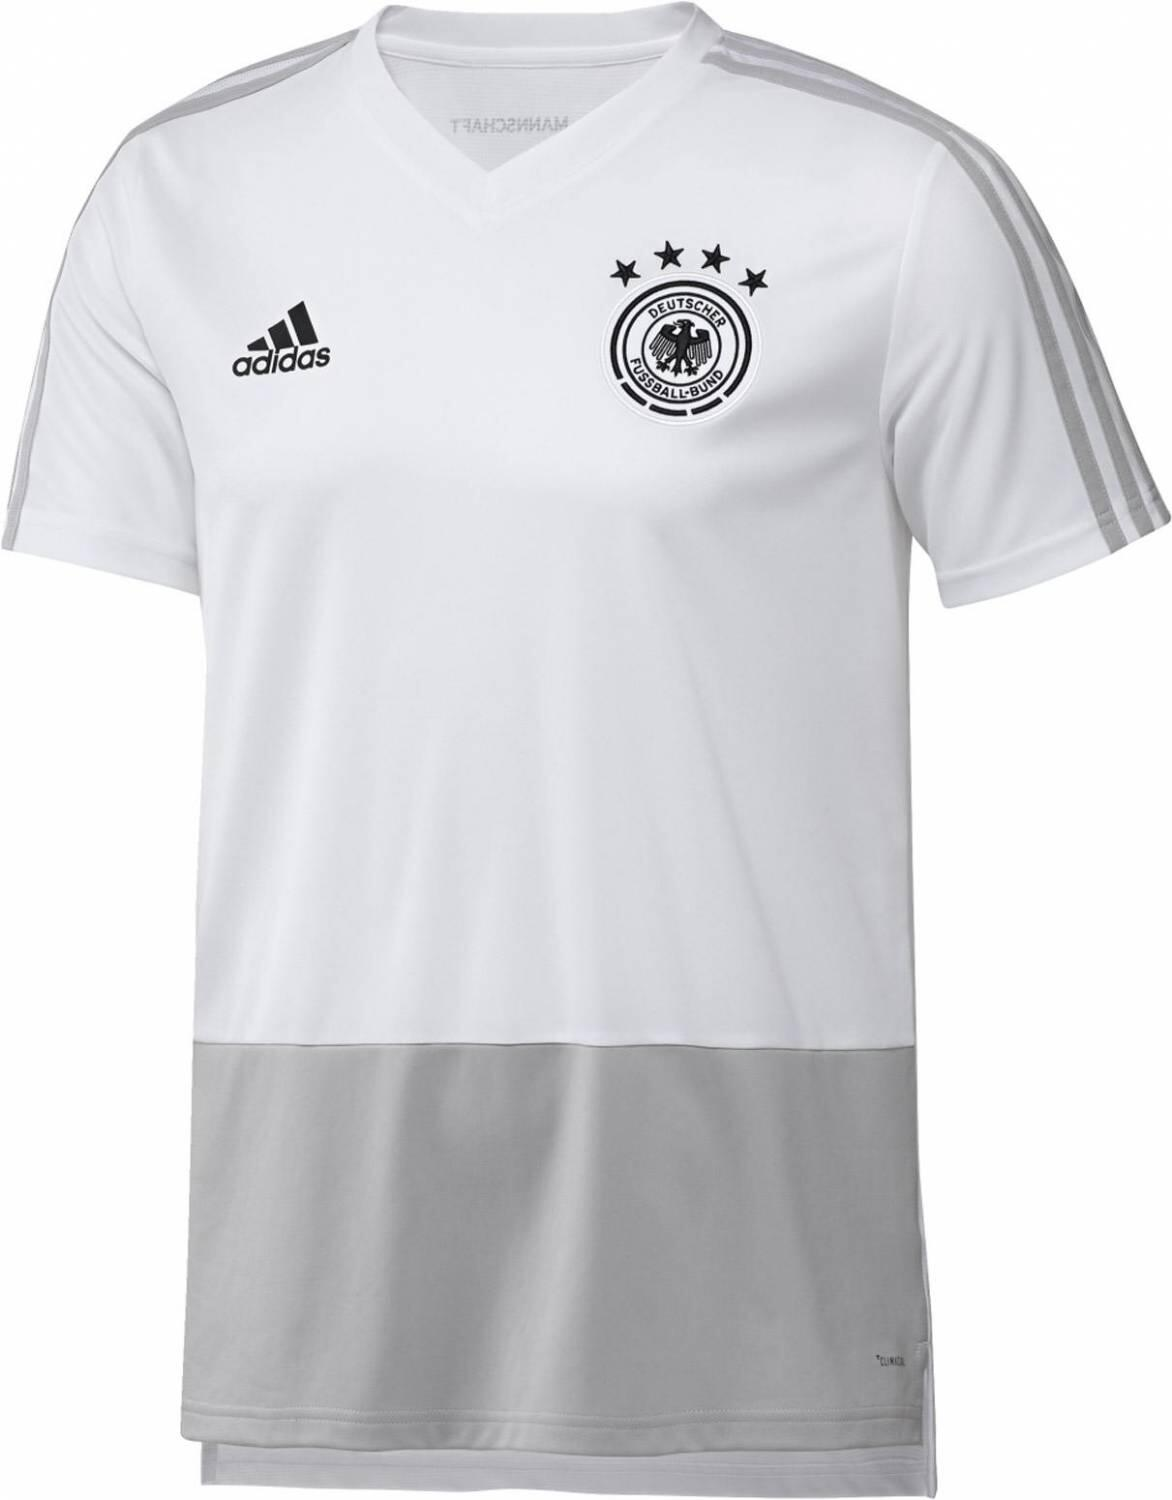 adidas-dfb-fu-szlig-ball-training-jersey-gr-ouml-szlig-e-m-white-grey-two-f17-black-